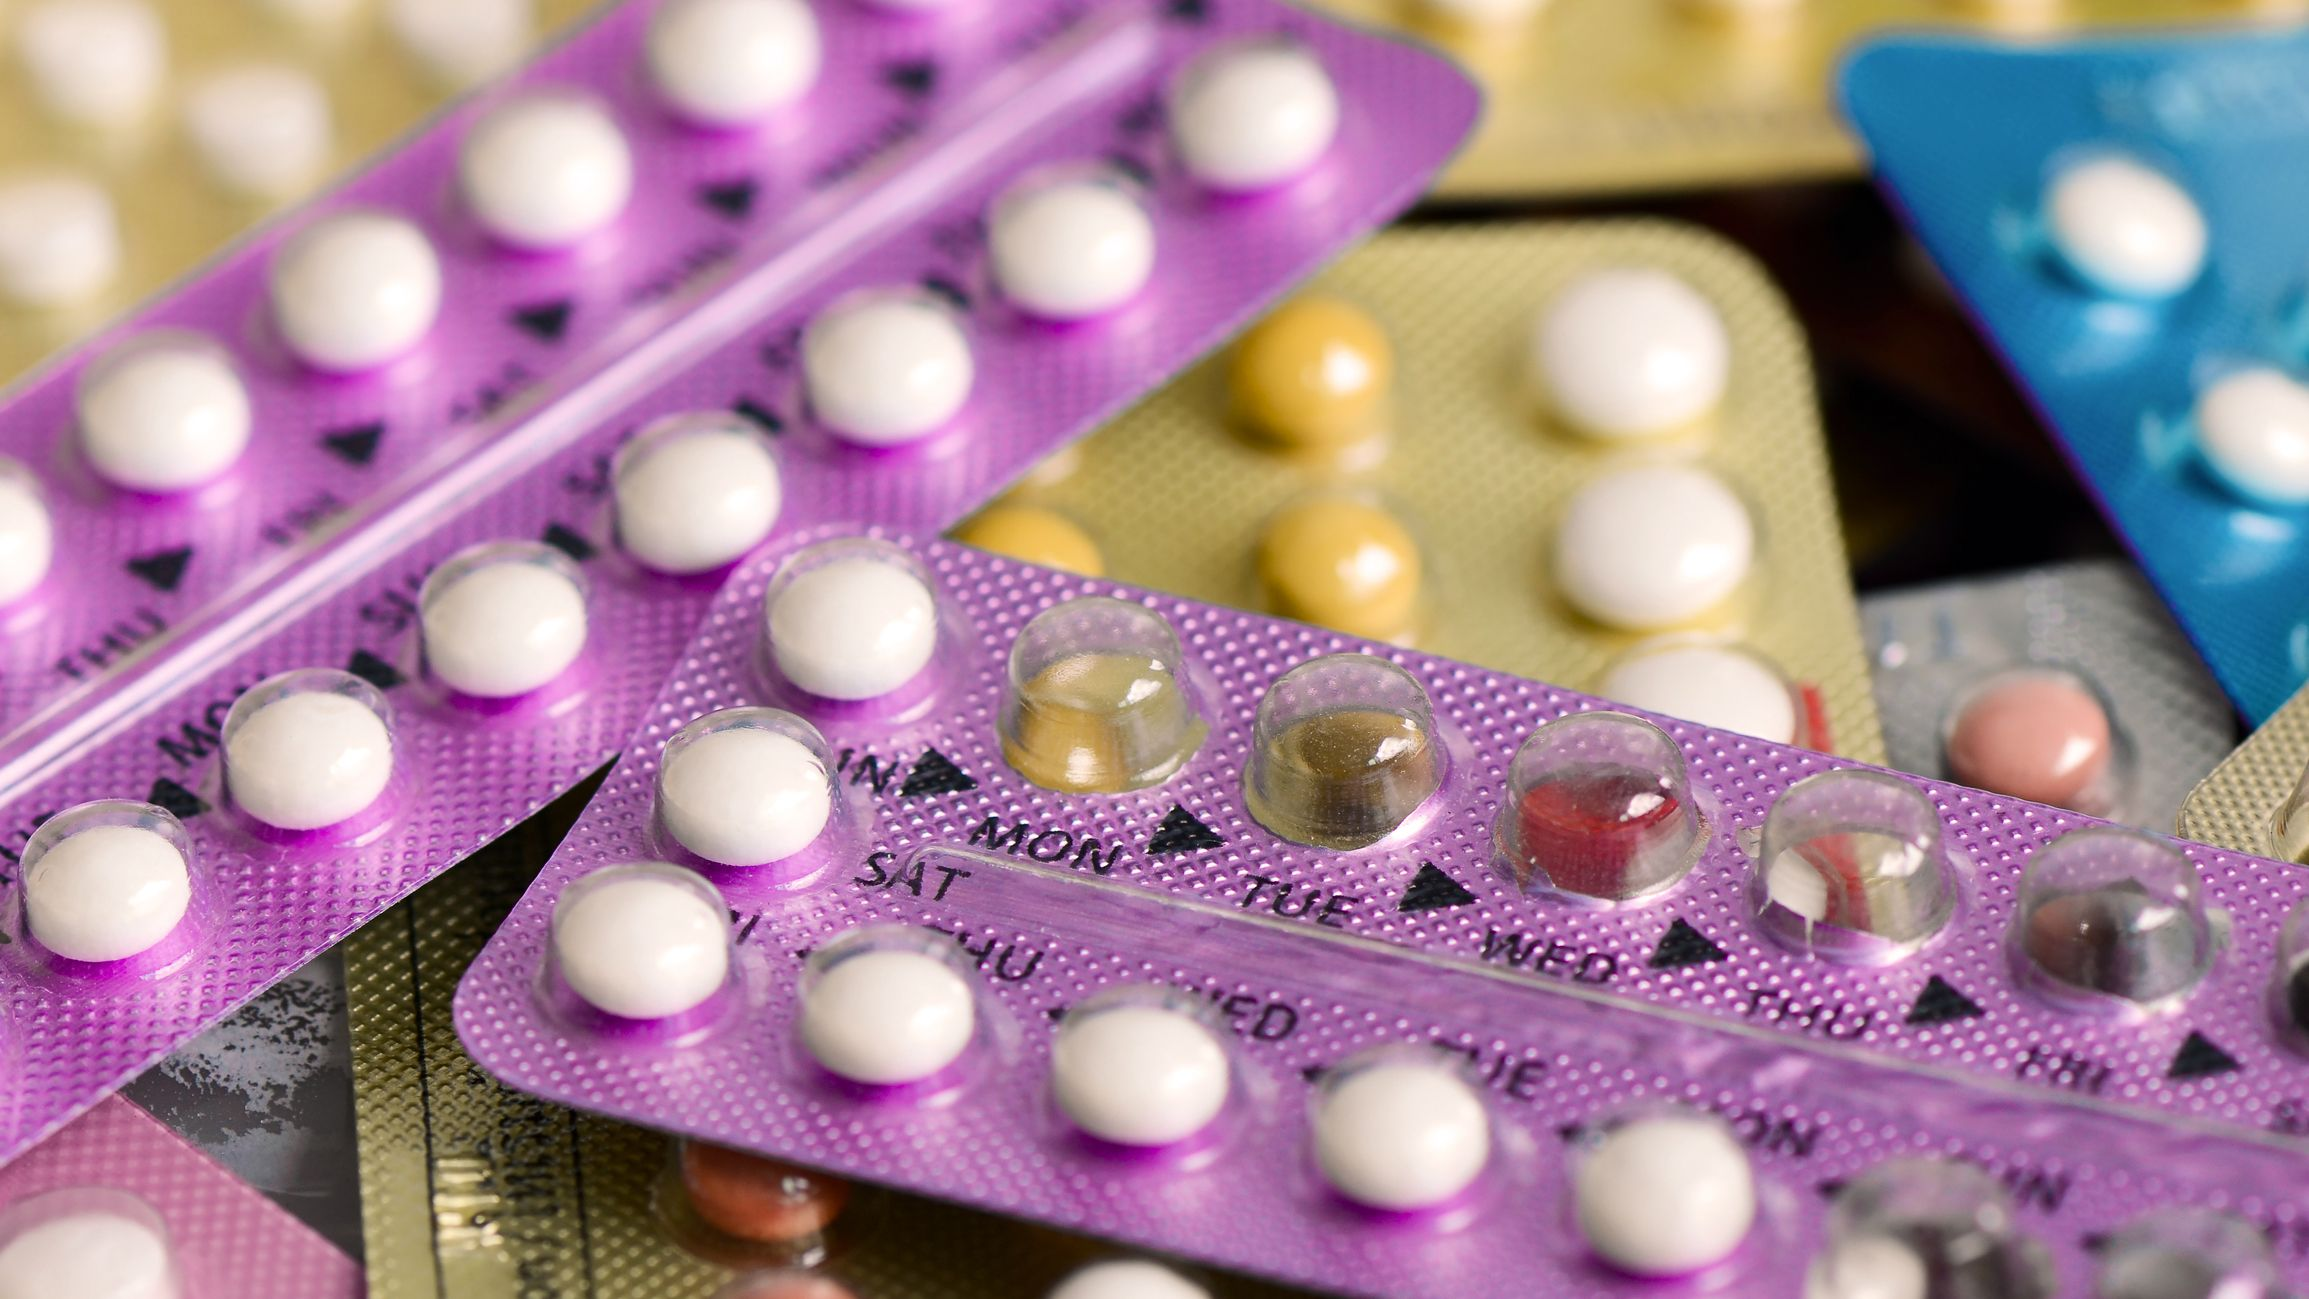 8 Unexpected Health Benefits of Birth Control